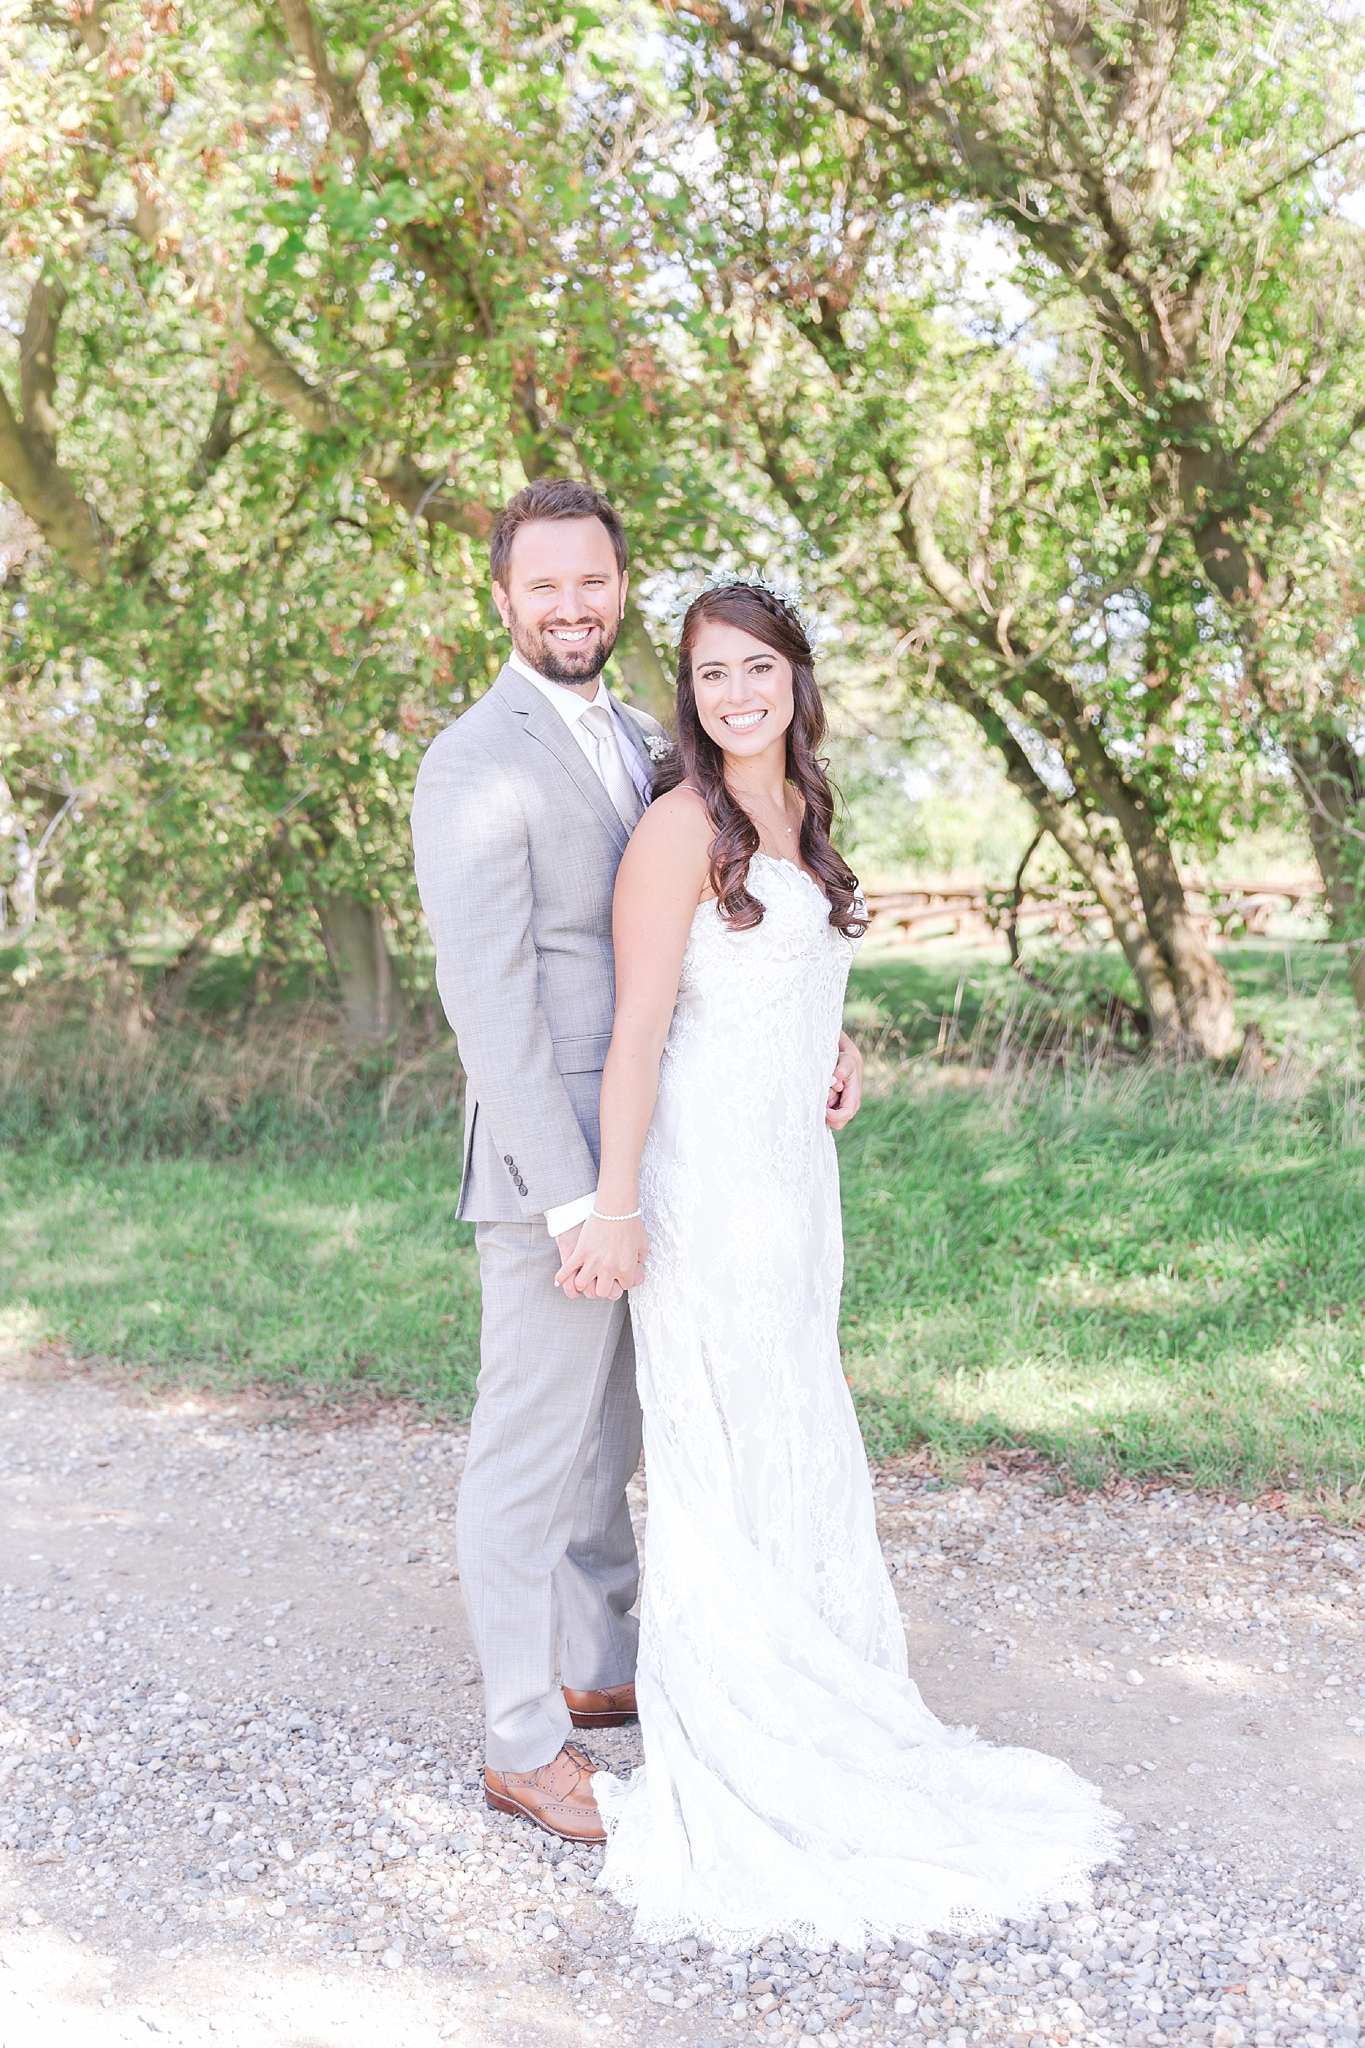 natural-rustic-wedding-photos-at-frutig-farms-the-valley-in-ann-arbor-michigan-by-courtney-carolyn-photography_0031.jpg